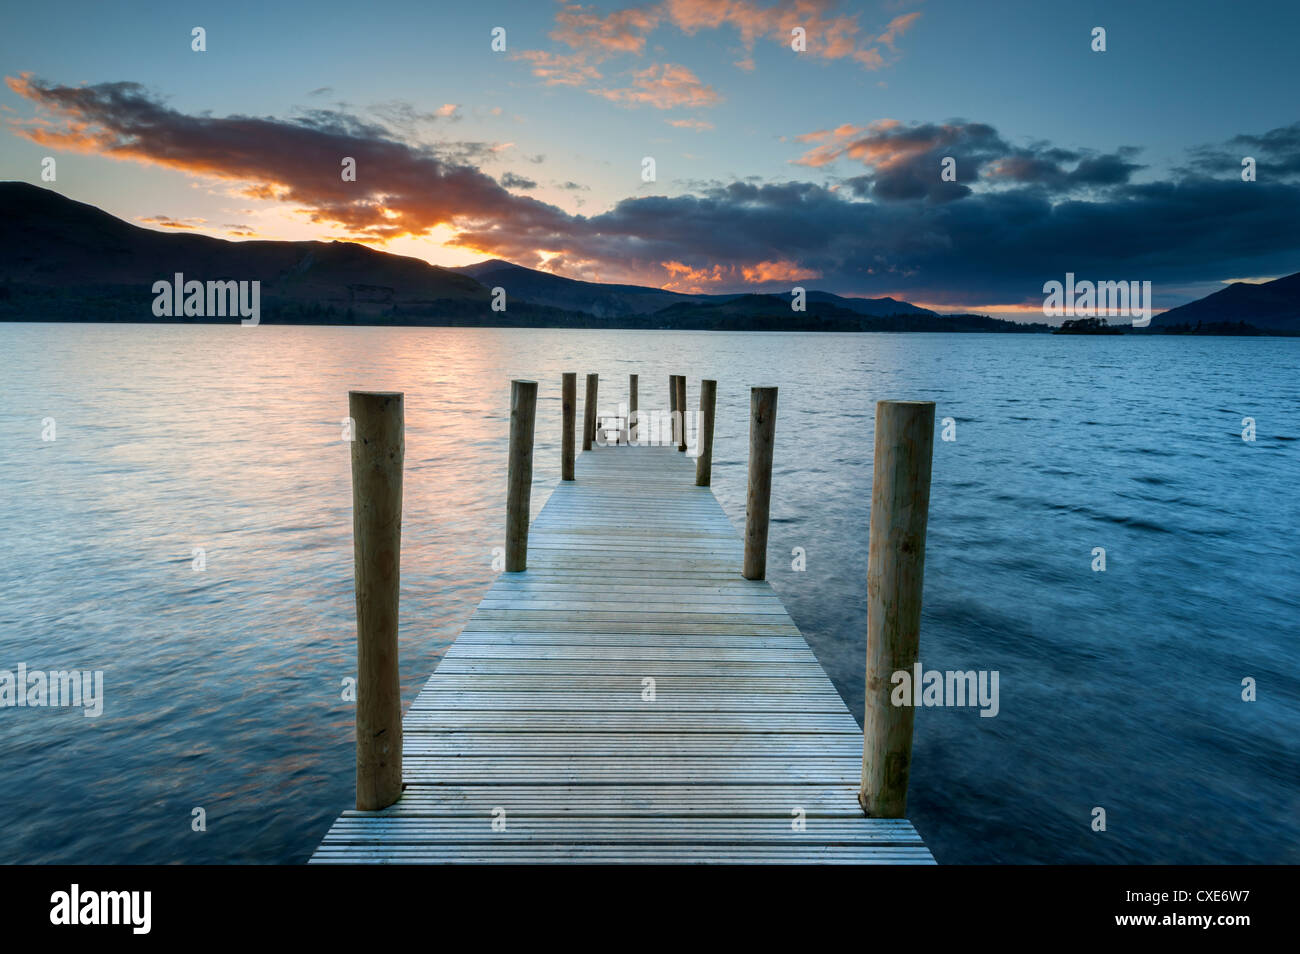 Sunset at Ashness Jetty, Barrow Bay, Derwent Water, Keswick, Lake District National Park, Cumbria, England - Stock Image